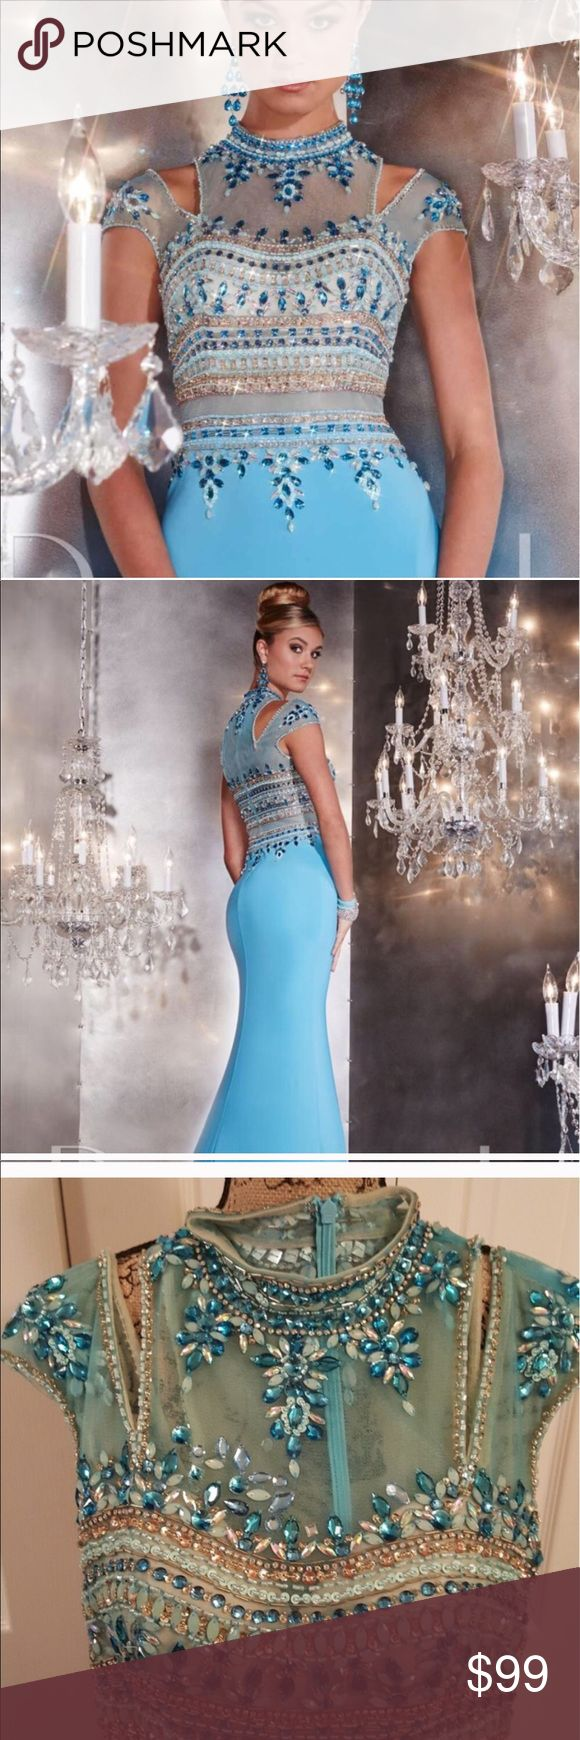 Panoply dress style 14747 aqua size 6 Brand new with TAGS beautiful beaded work aqua gown. Panoply Dresses Prom